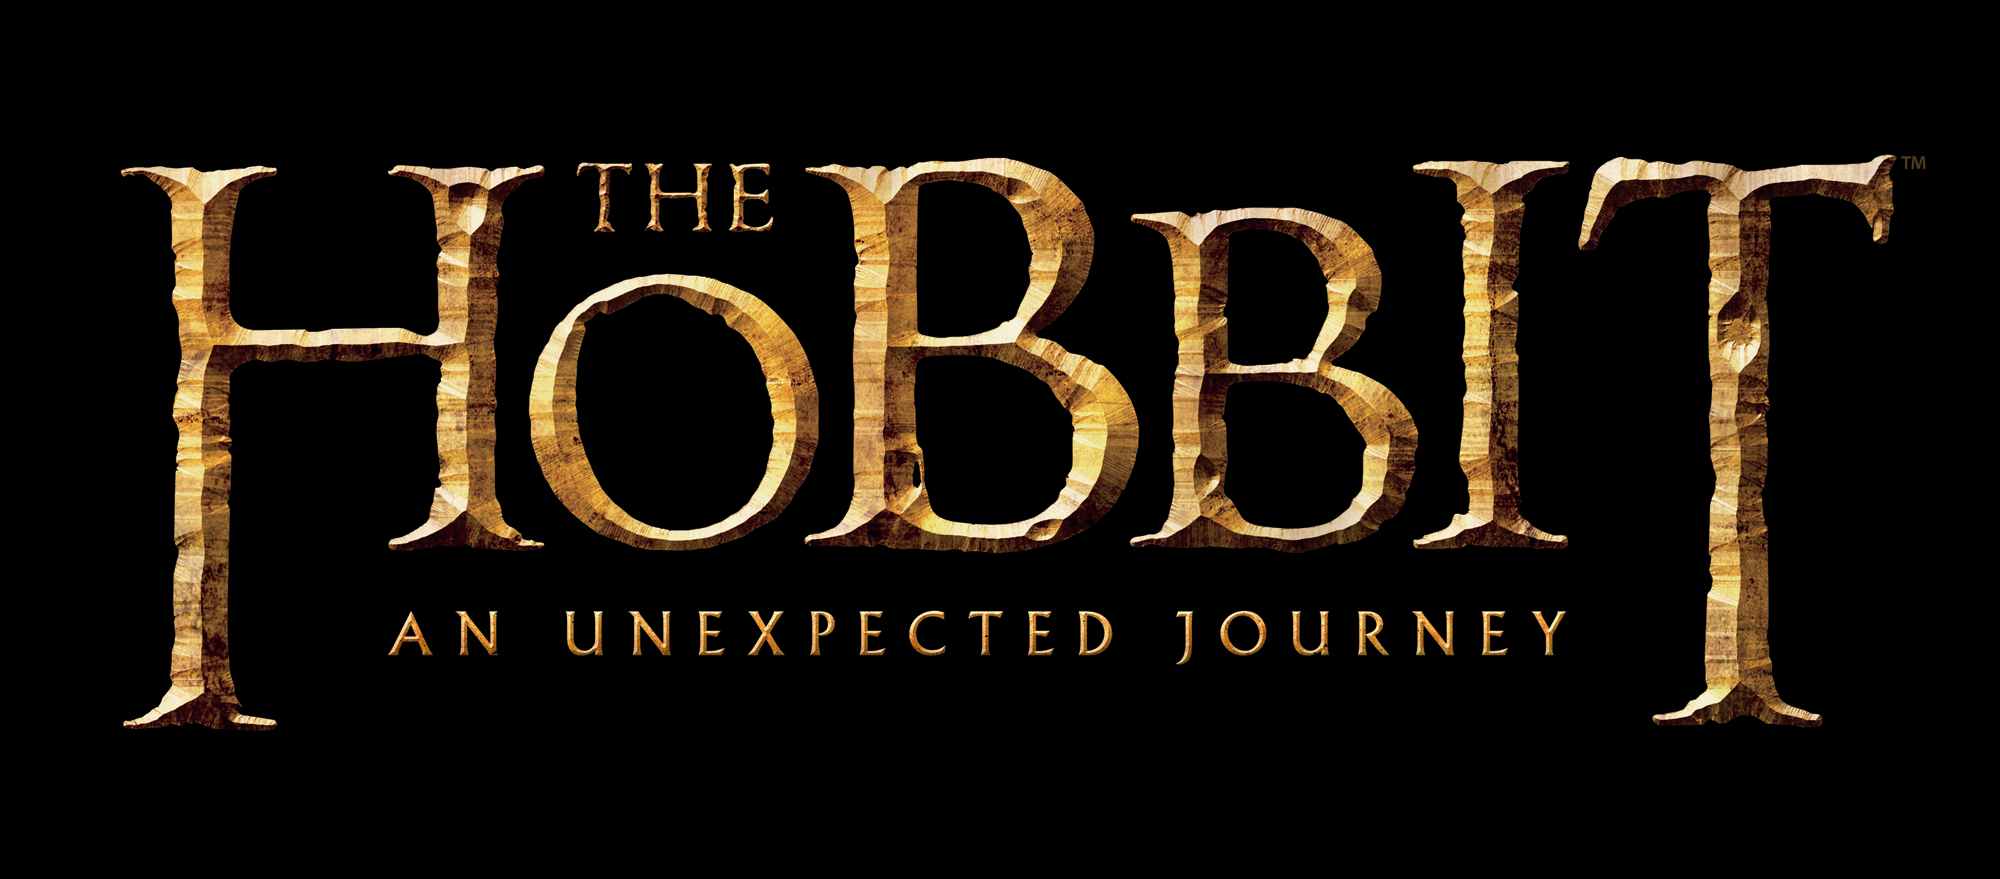 HOBBIT UNEXPECTED JOURNEY ADVENTURE BOARD GAME